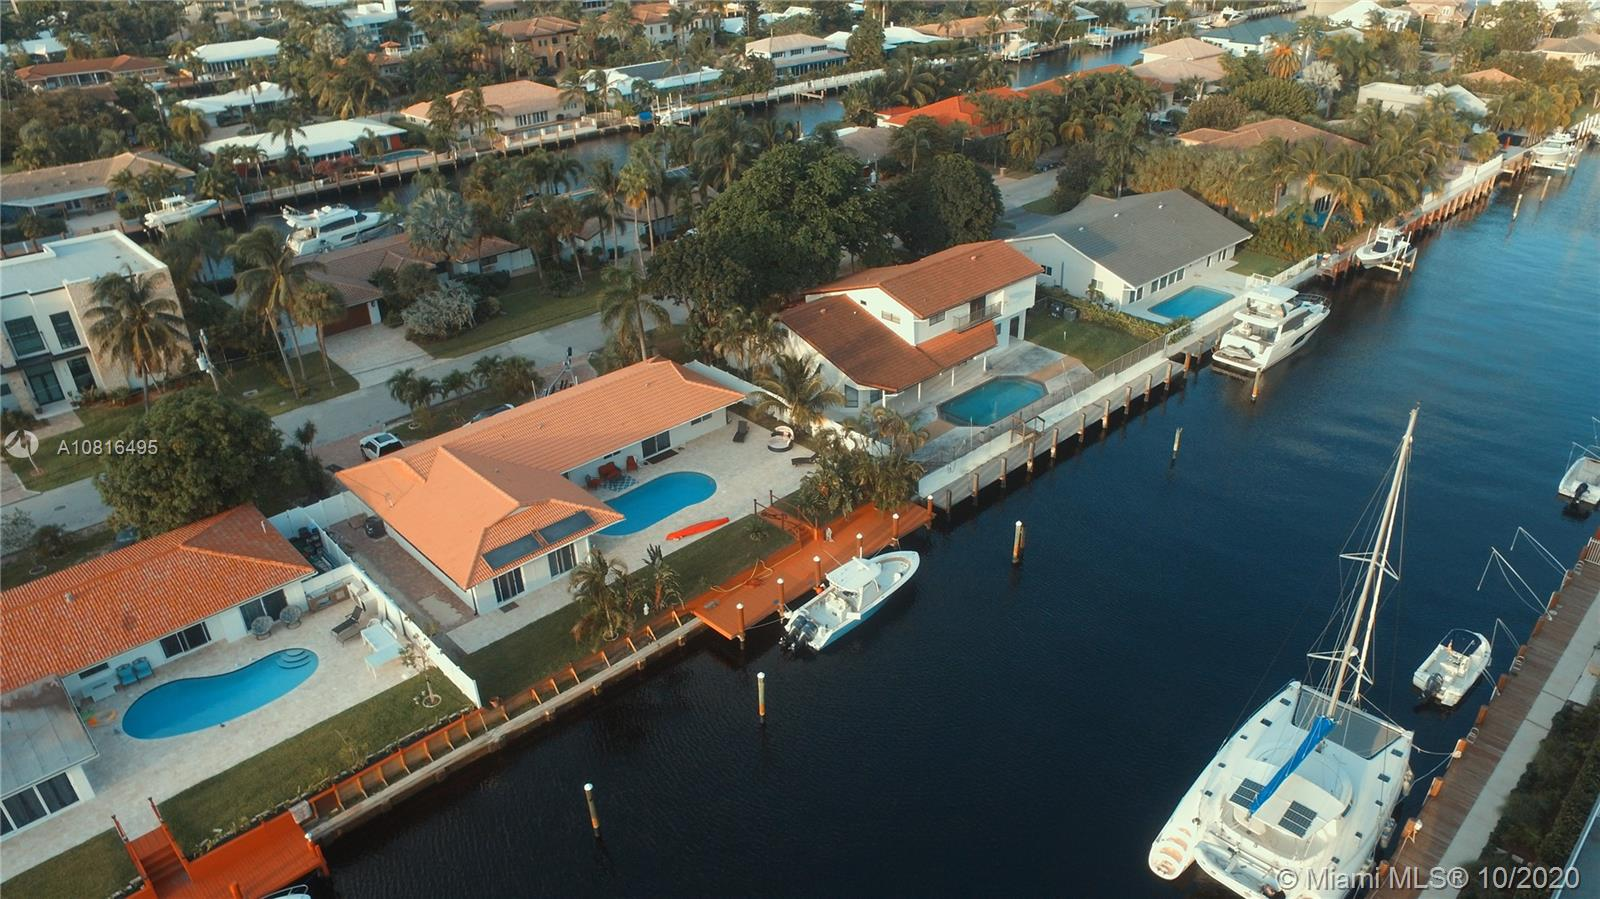 Attractively renovated waterfront home in Coral Ridge. 4 bedrooms 2 baths with split bedroom floor plan. House features new kitchen with quartz counter tops, stainless appliances, tiled floors; new bathrooms, new dock 80 ft dock with 100ft of water frontage. Park your boat by your house and live a dream. No fixed bridges, ocean access. Many restaurants near by. Excellent infrastructure of the area with walking distance to the ocean, mall, restaurants and shops. Excellent location. New pool deck, new driveway. 